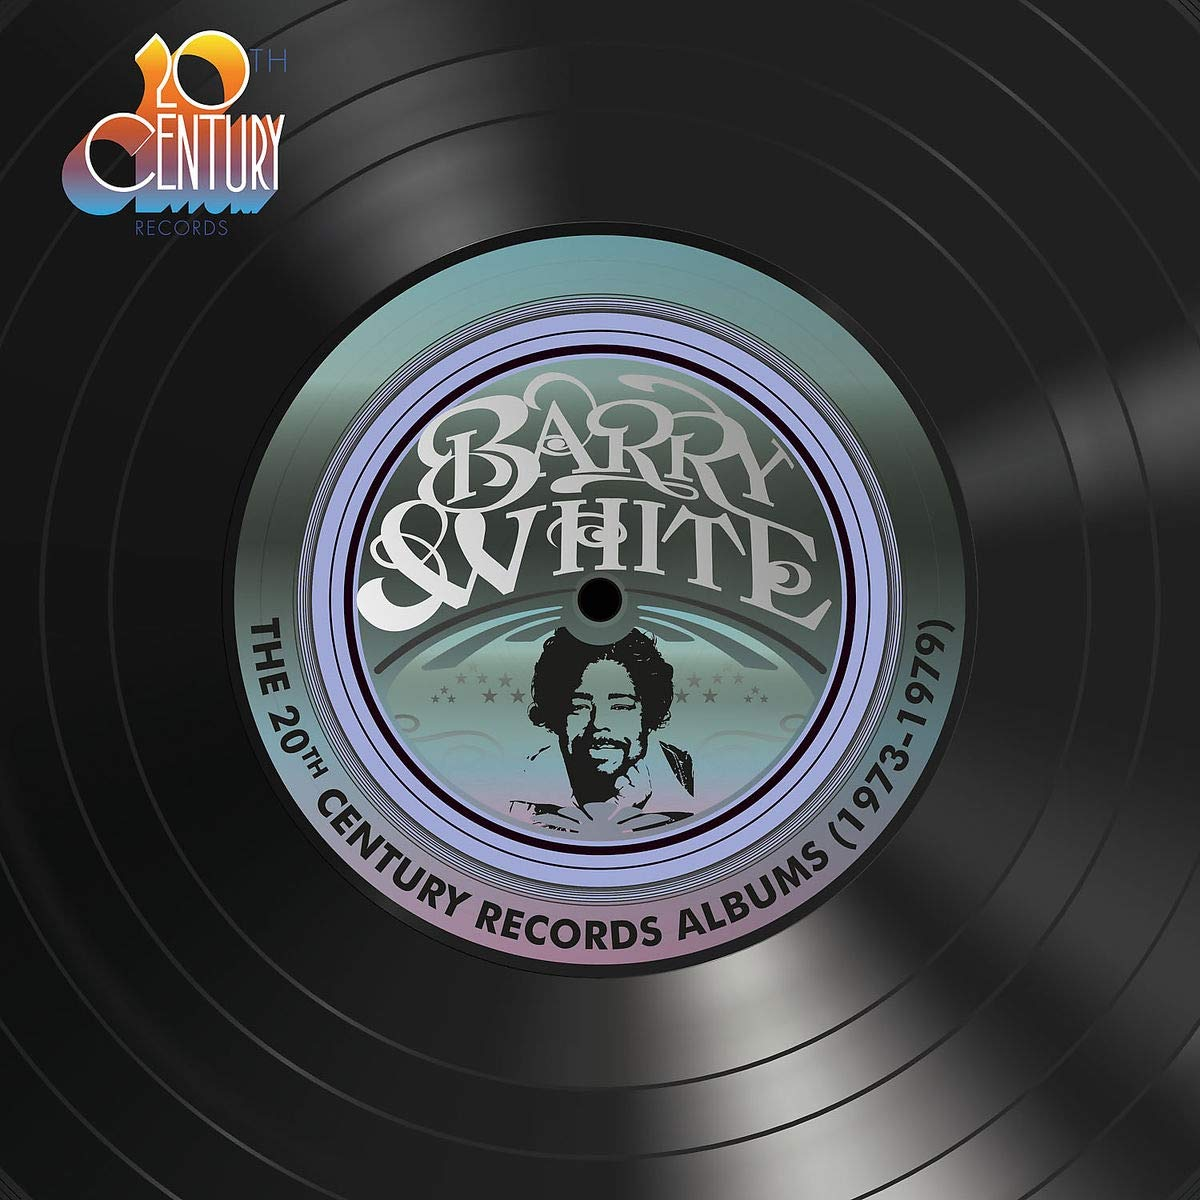 CD : Barry White - The 20th Century Records Albums (1973-1979) (Boxed Set)